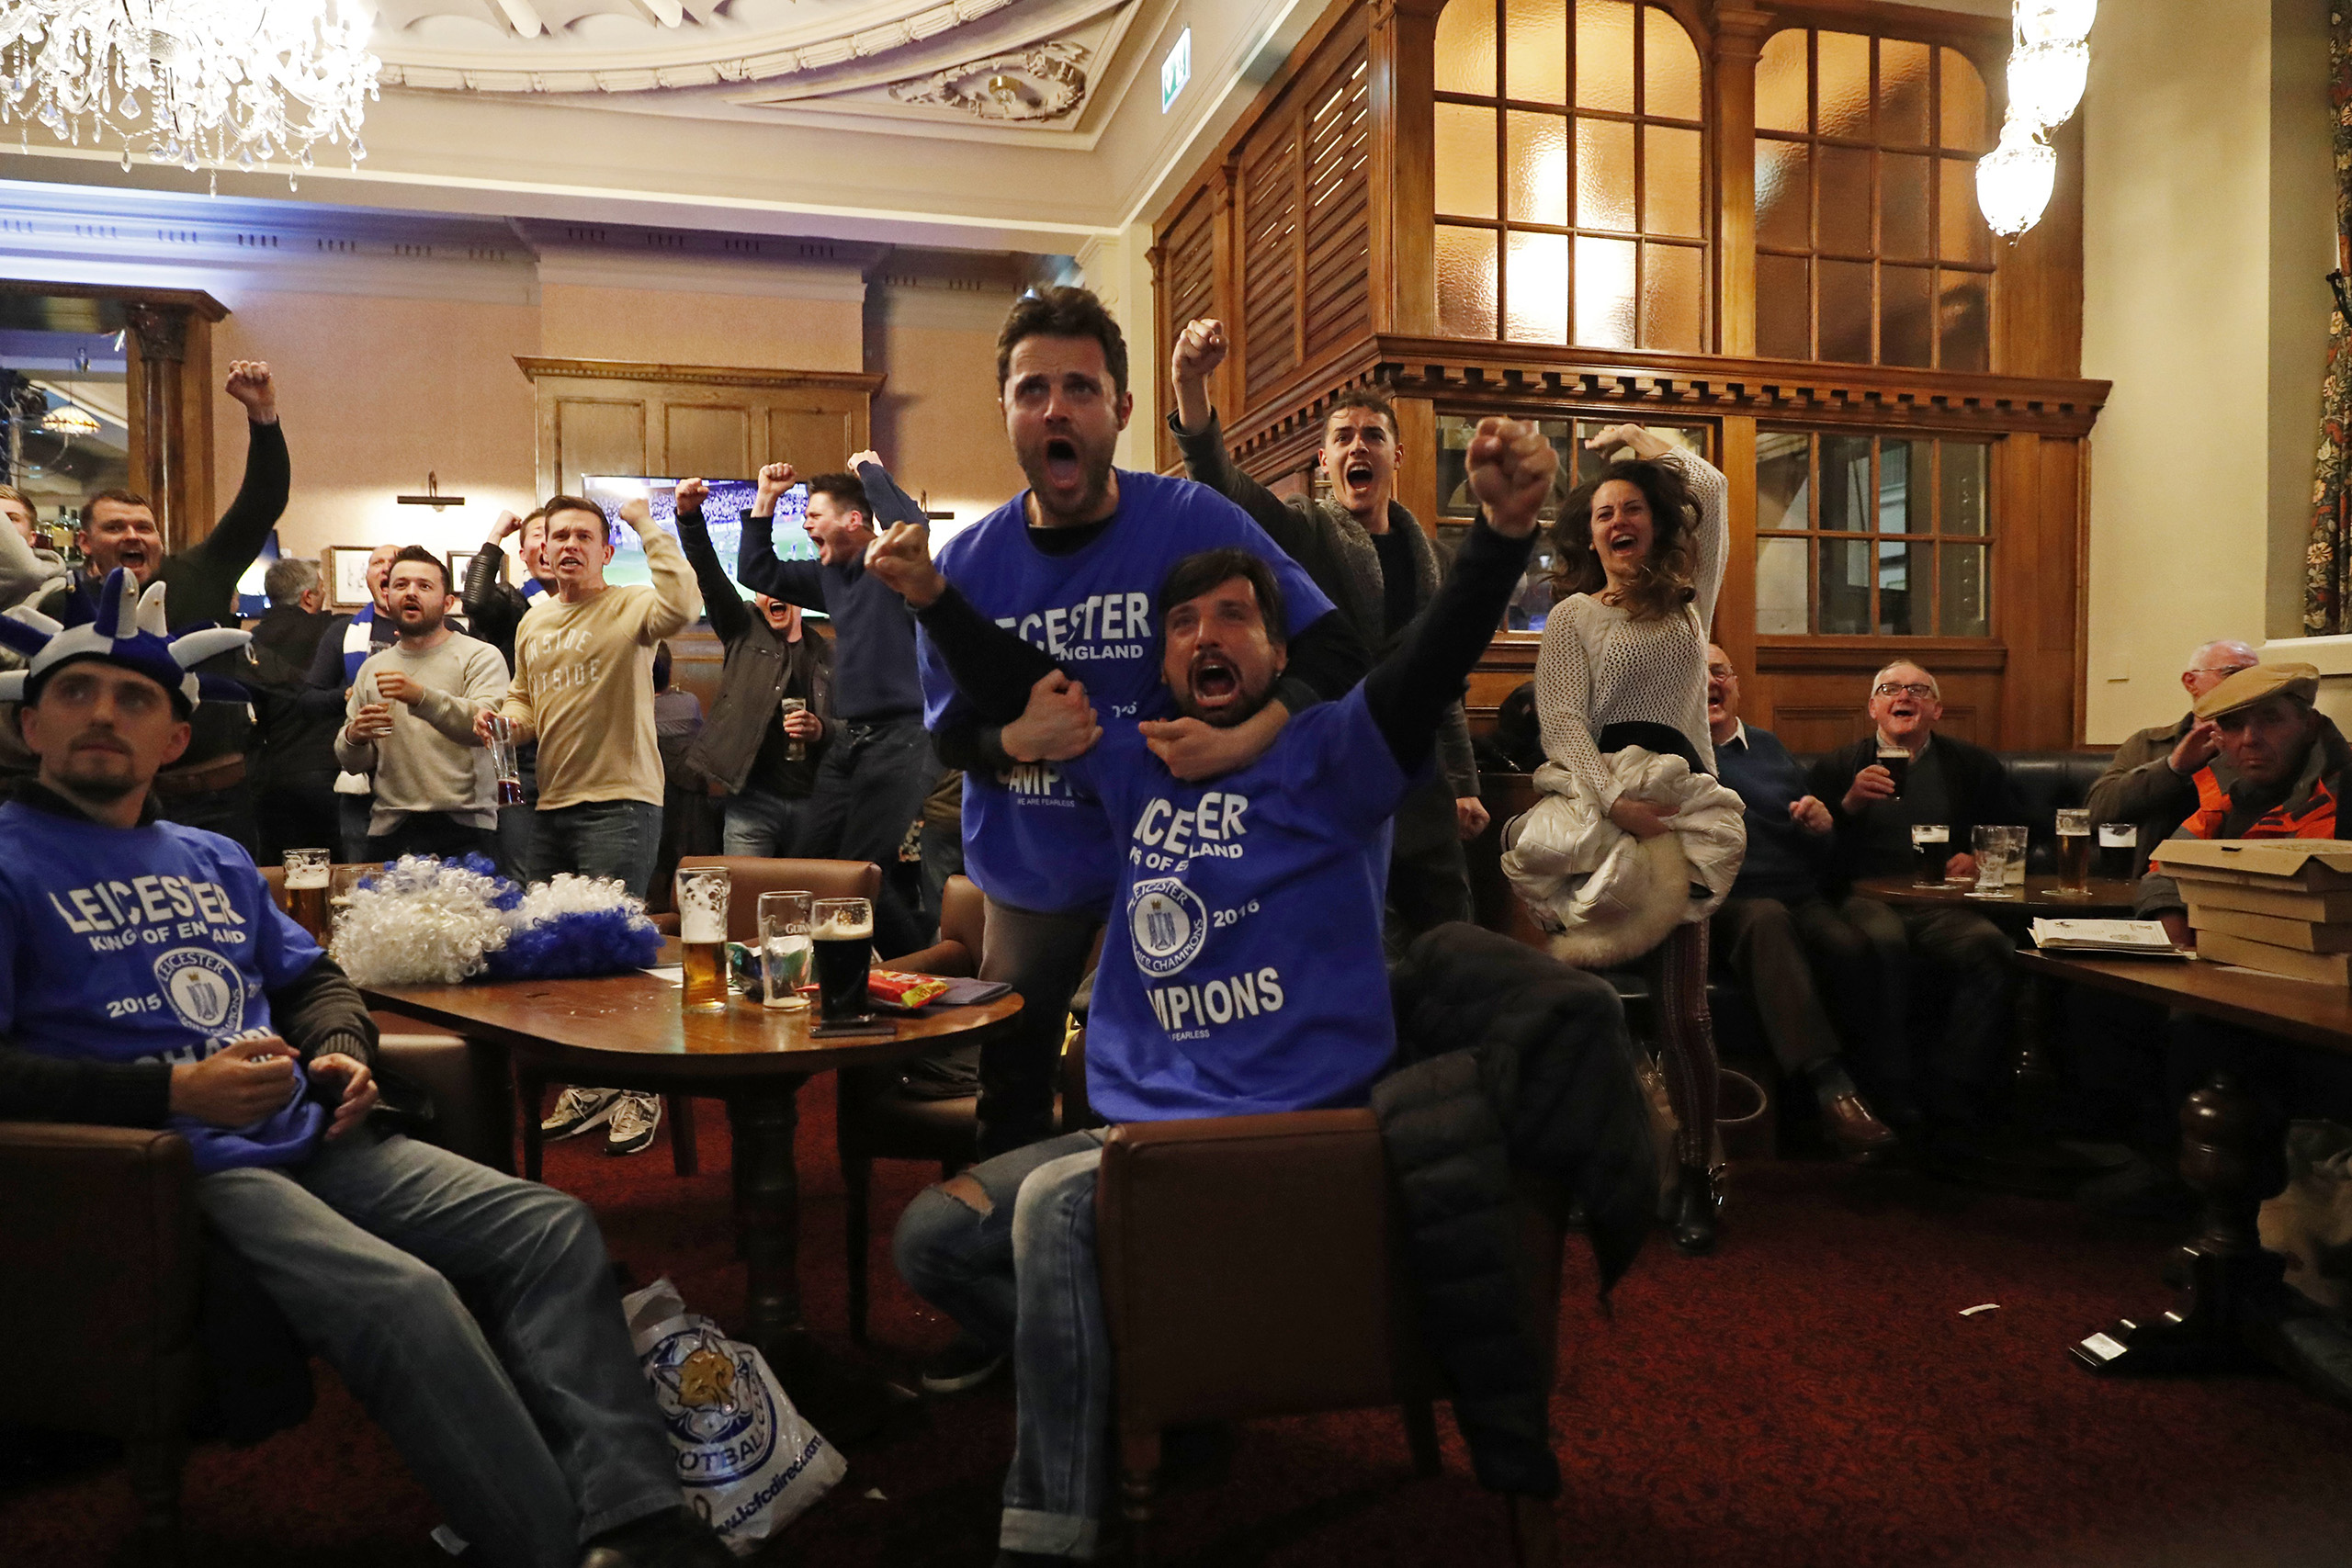 Leicester City fans celebrate after Chelsea's first goal against Tottenham Hotspur at a pub in Leicester, eastern England, May 2, 2016.